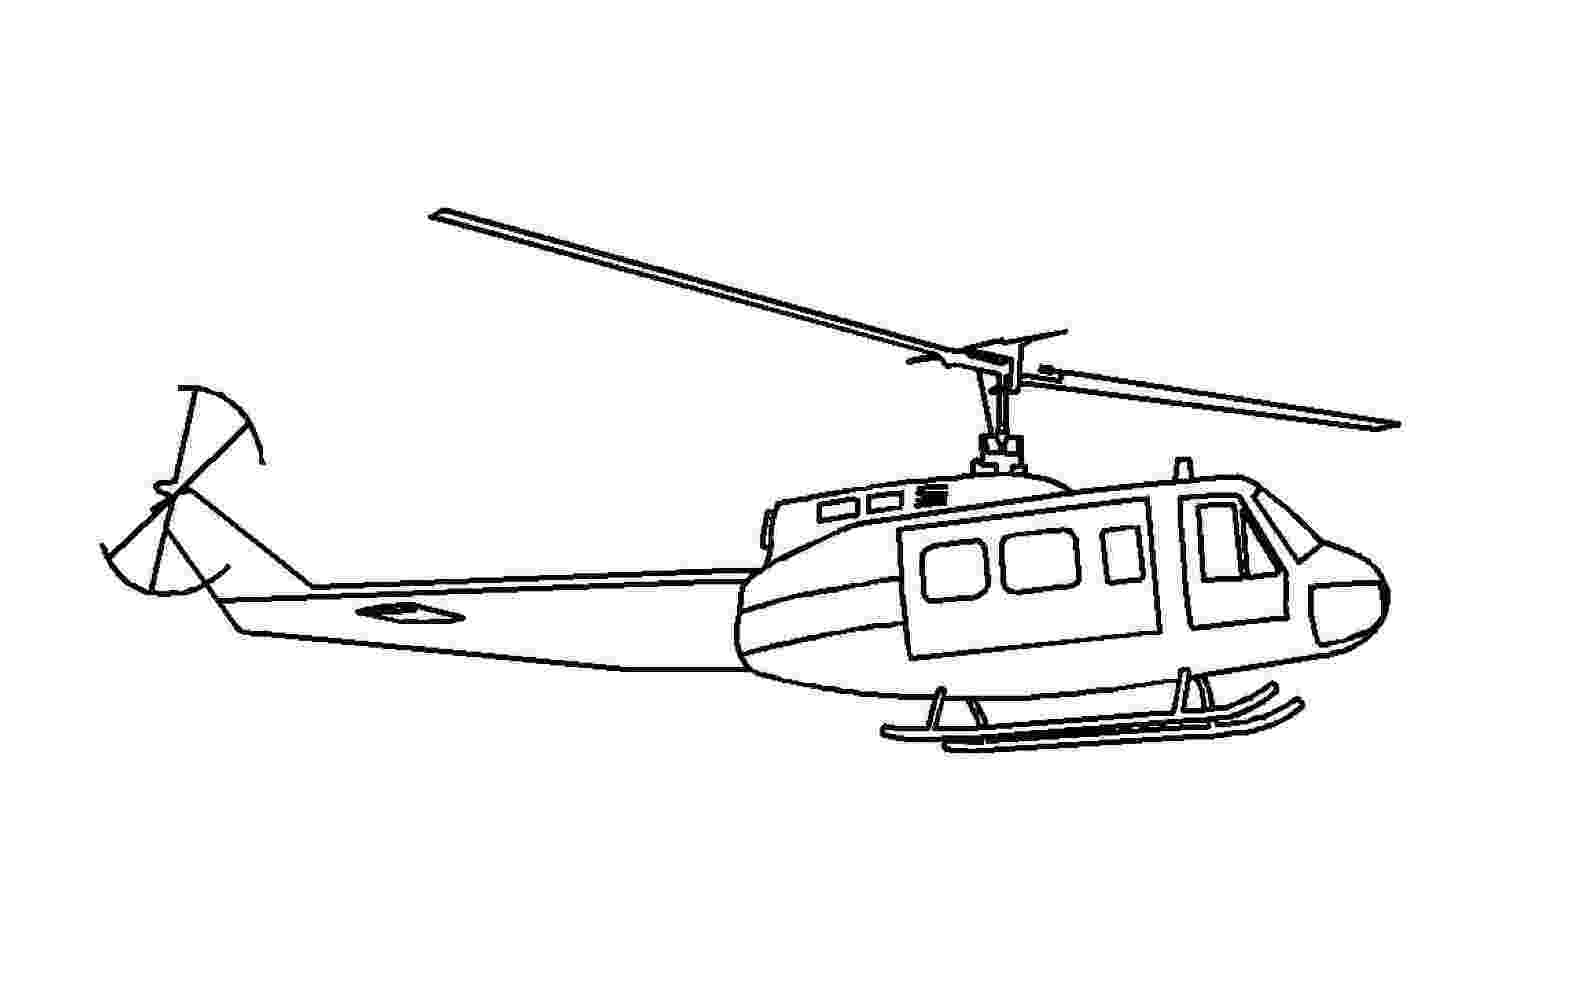 helicopter colouring free printable helicopter coloring pages for kids helicopter colouring 1 3